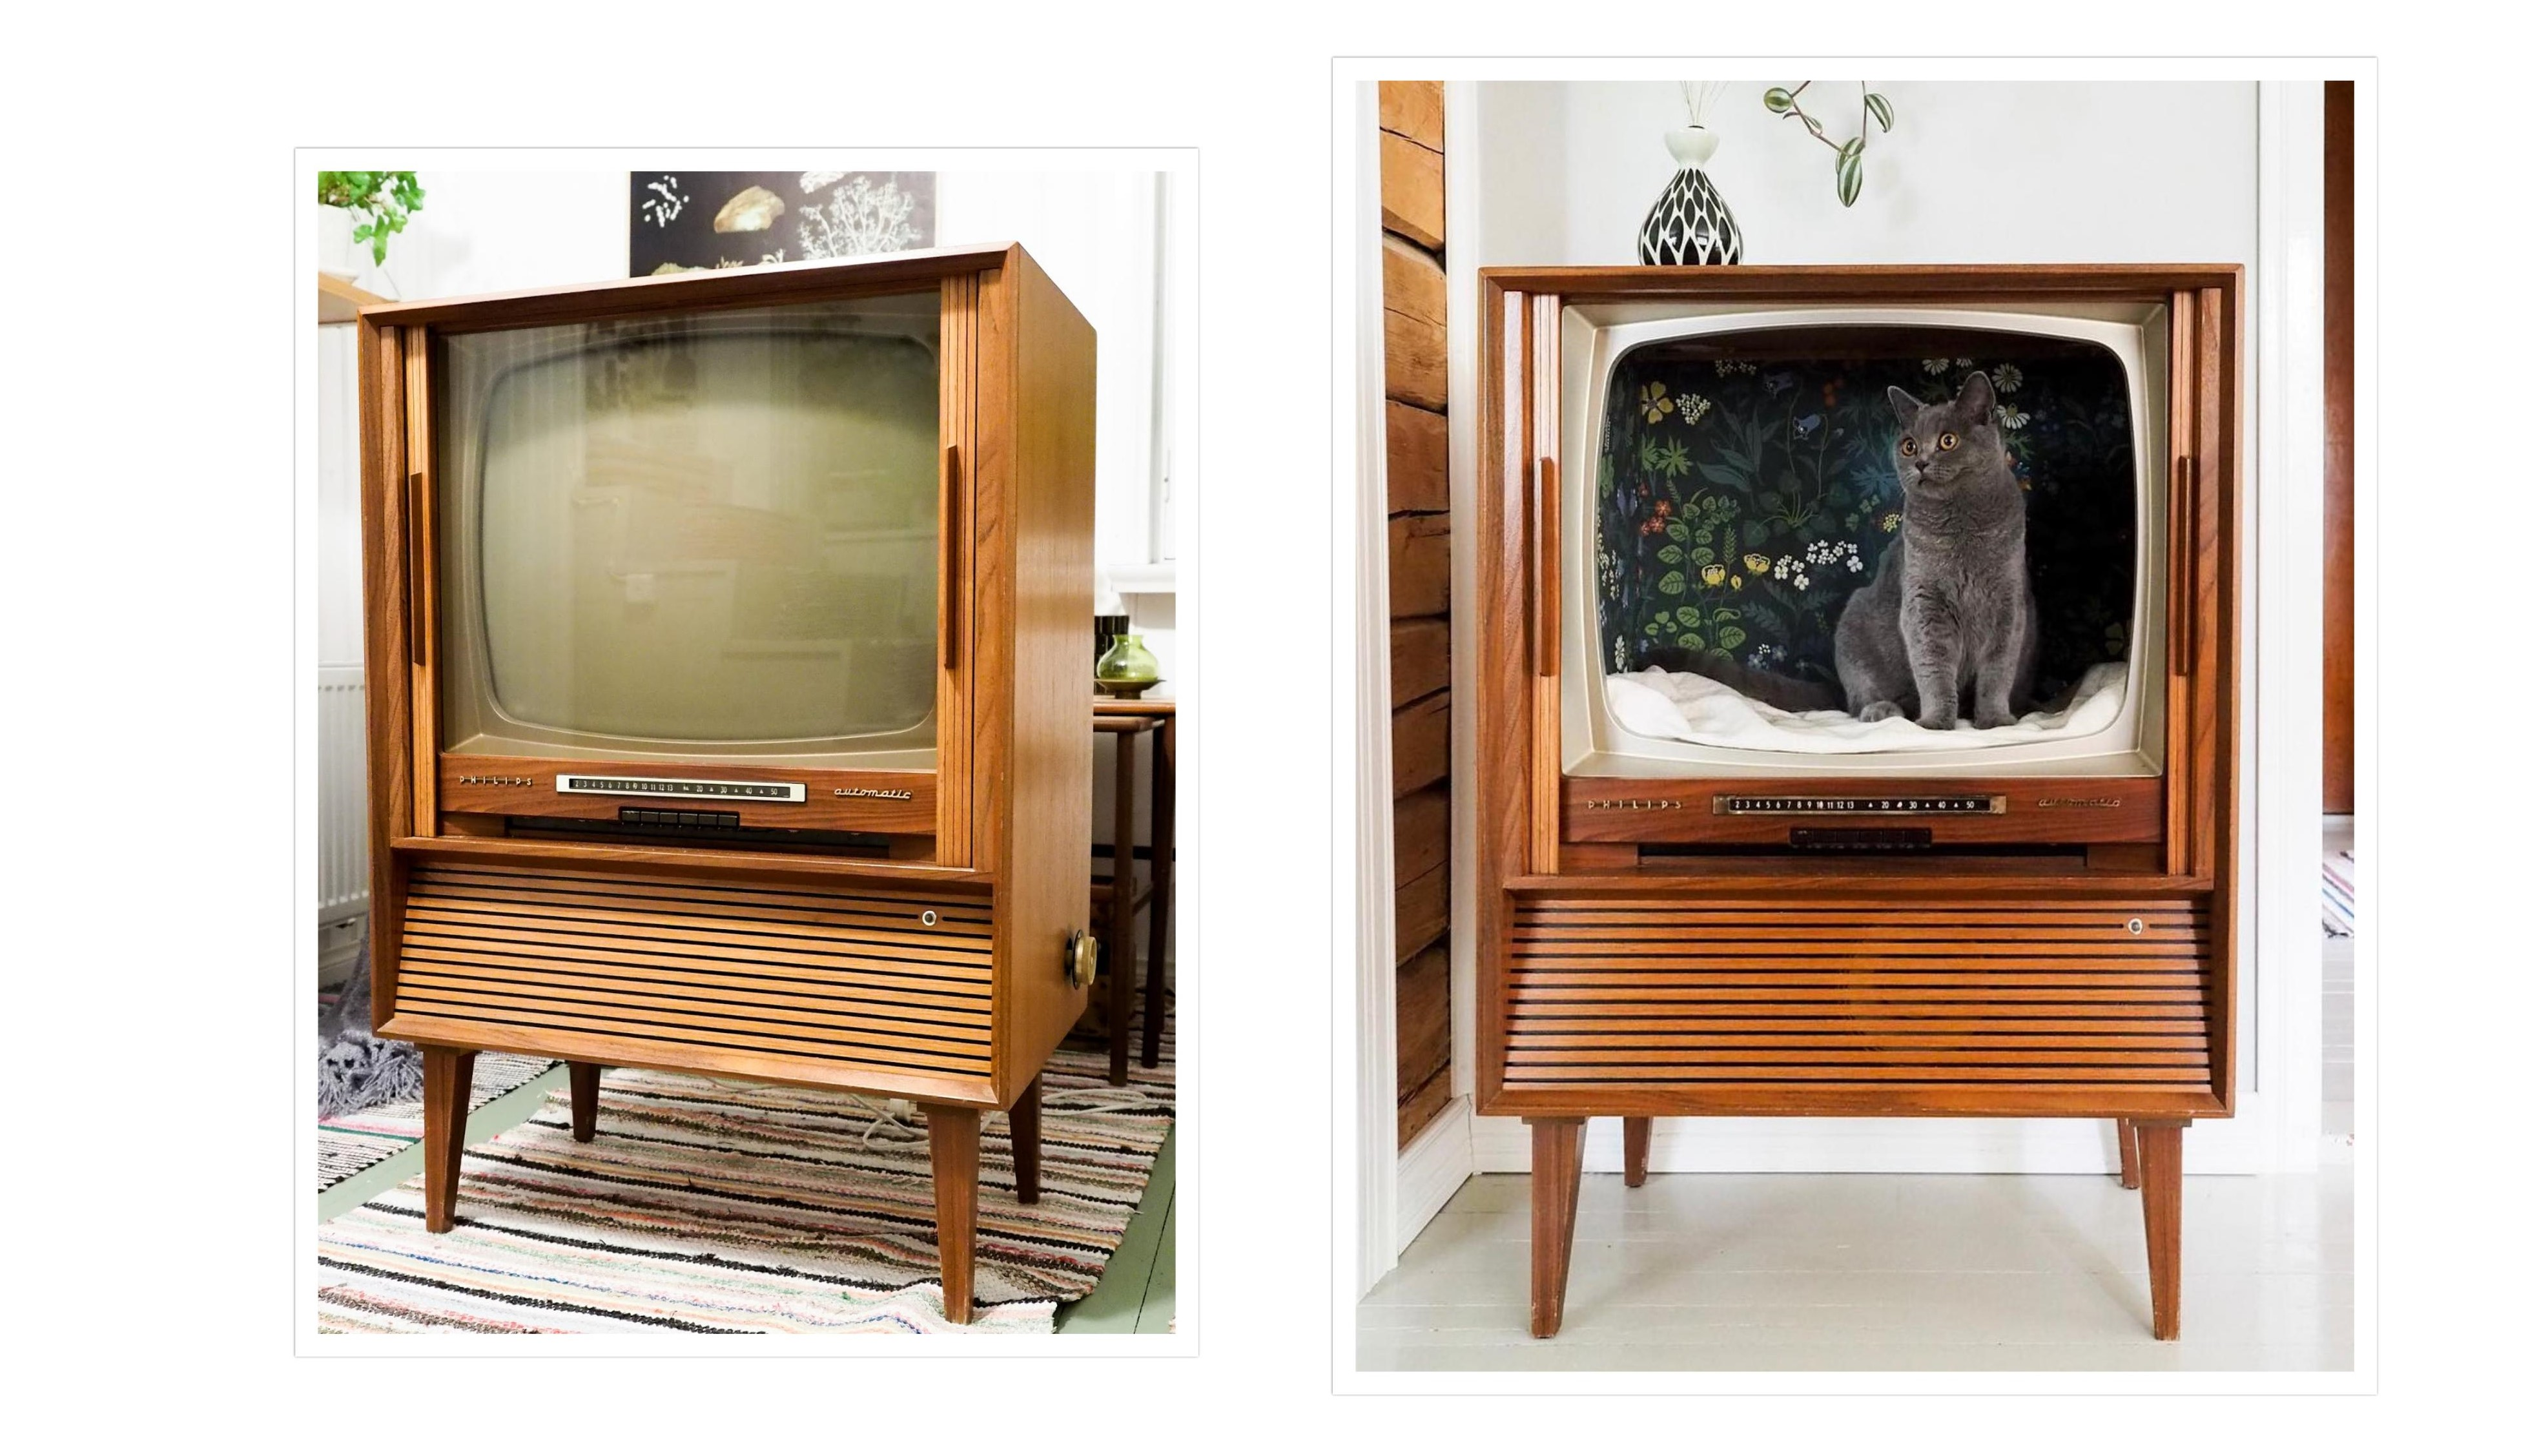 Old Philips TV cabinet repurposed into cat house